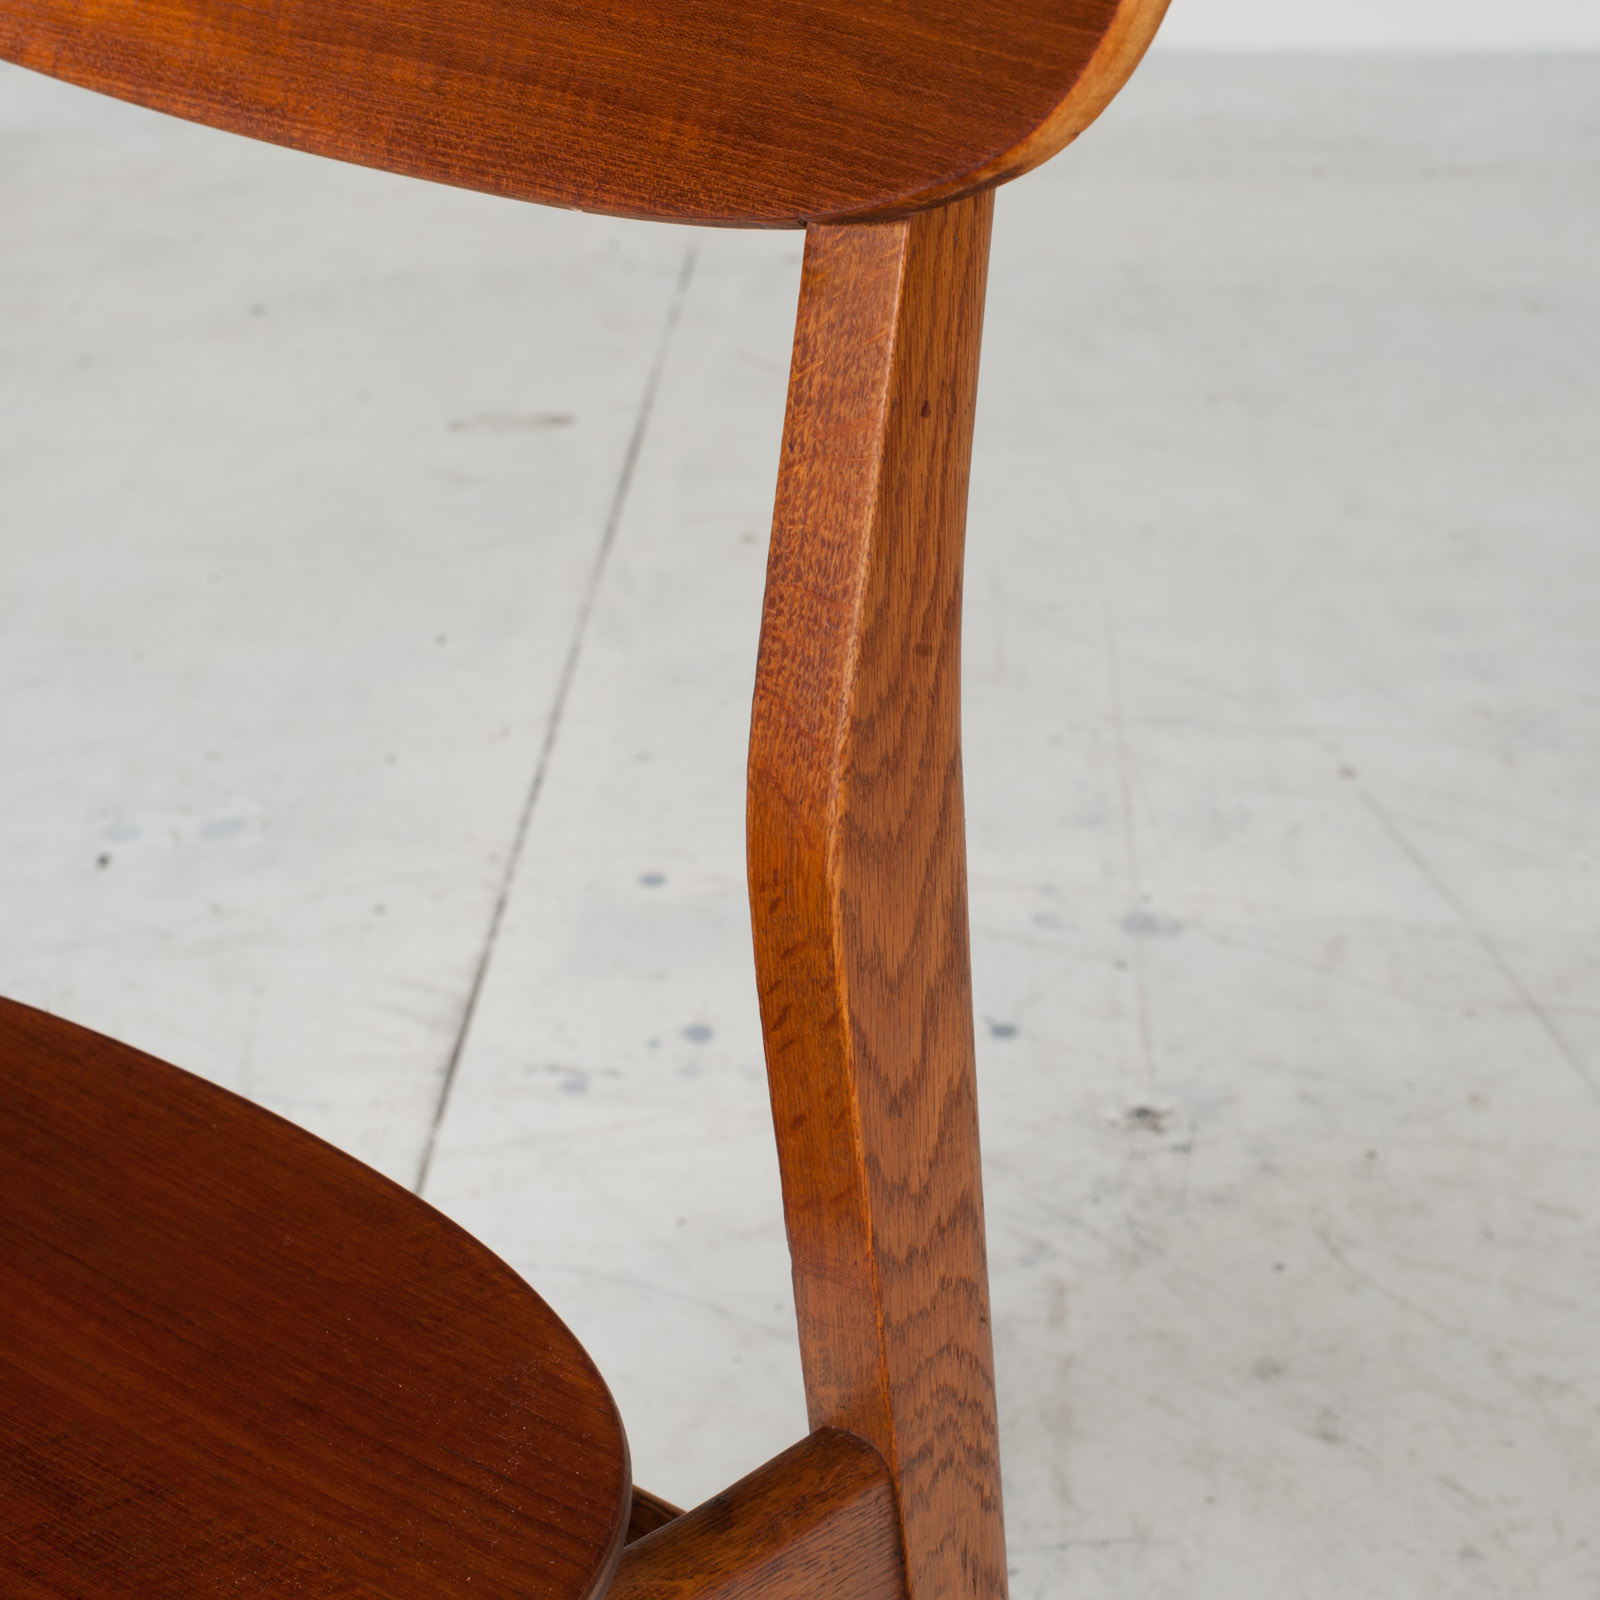 Set Of 4 Round Back Dining Chairs In Teak 1960s Denmark9